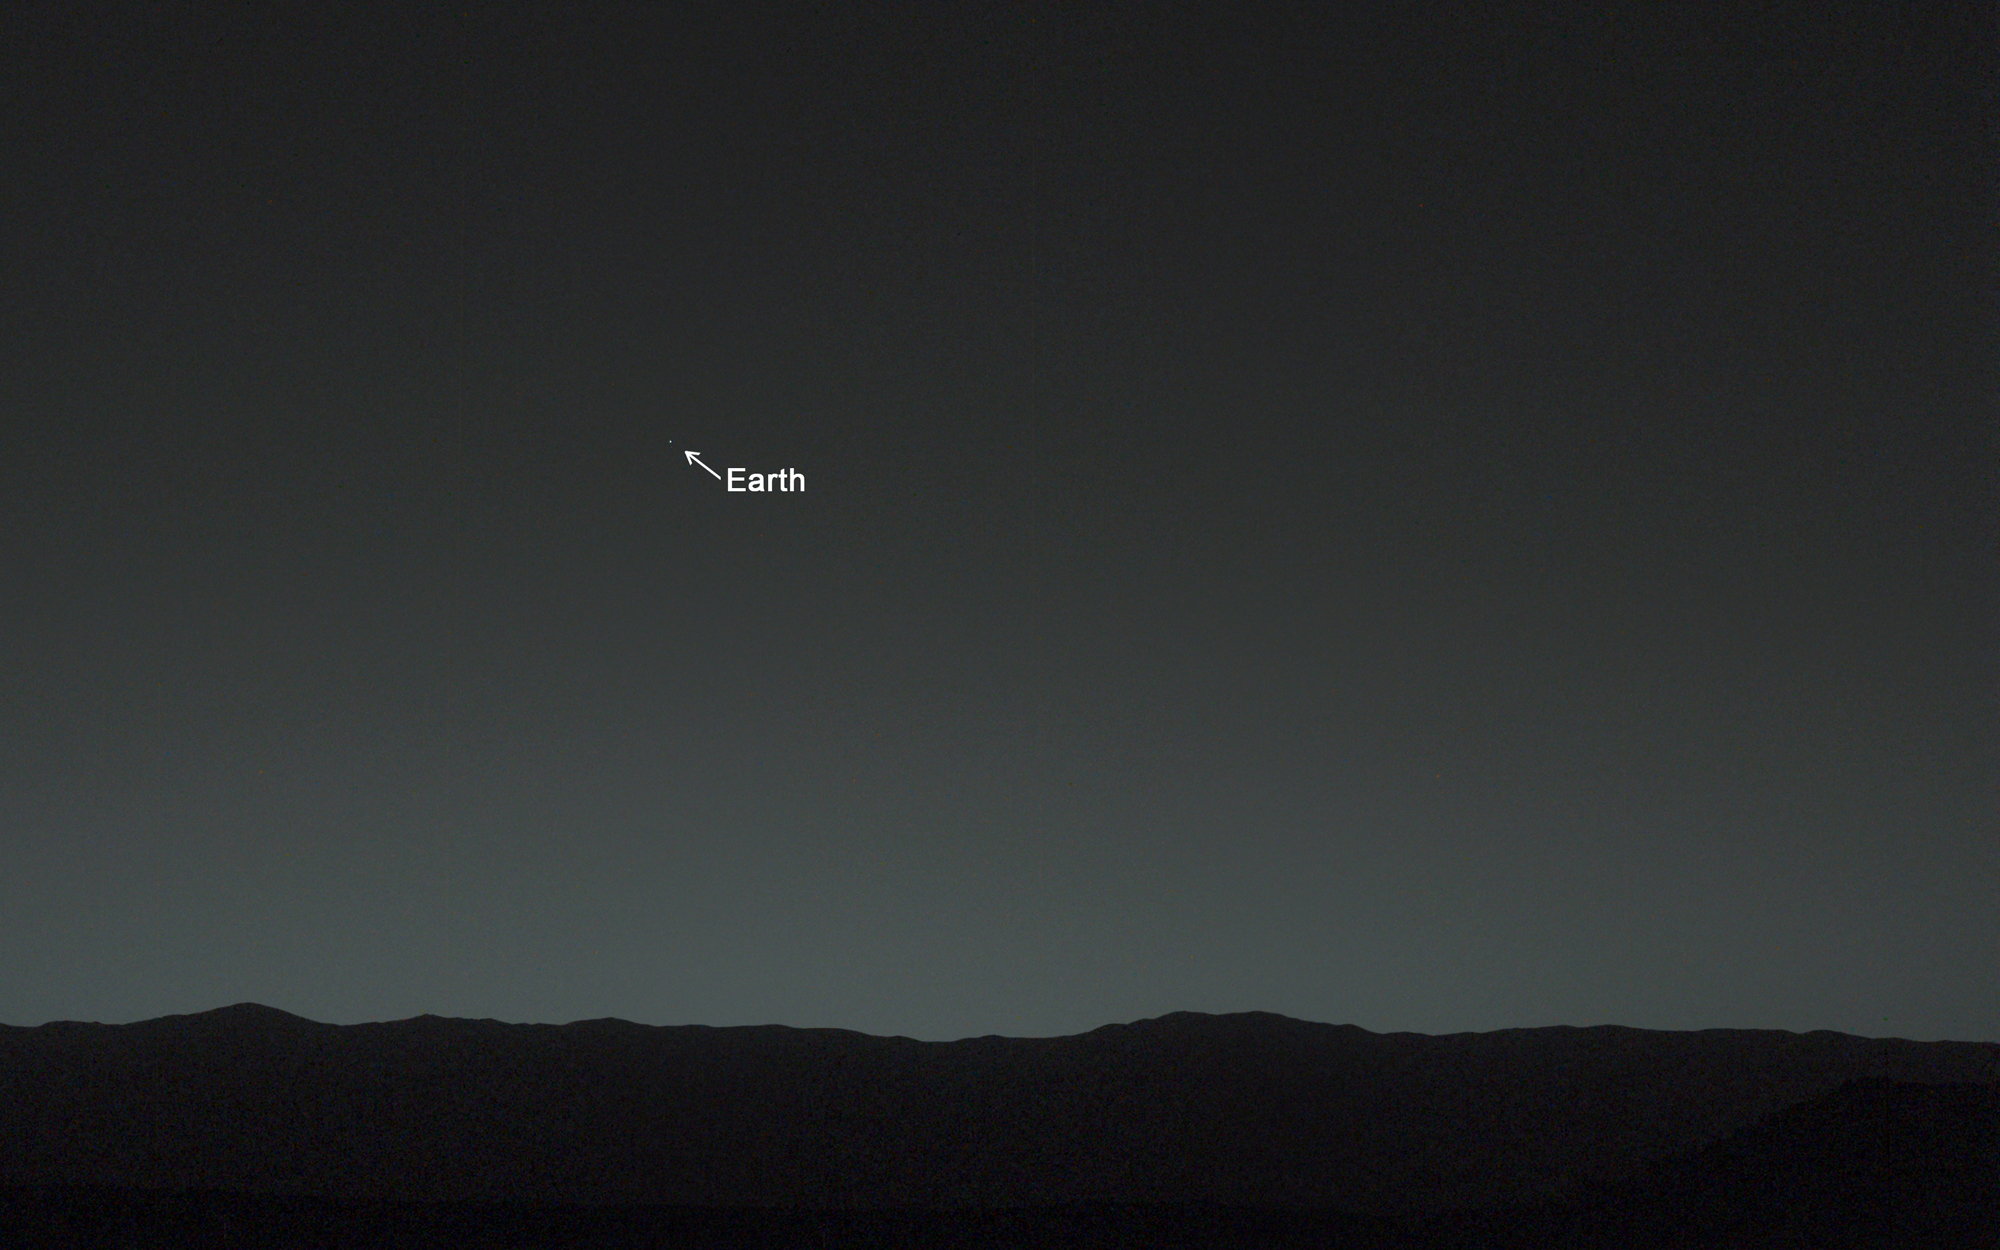 Earth from Mars by NASA's Curiosity Rover